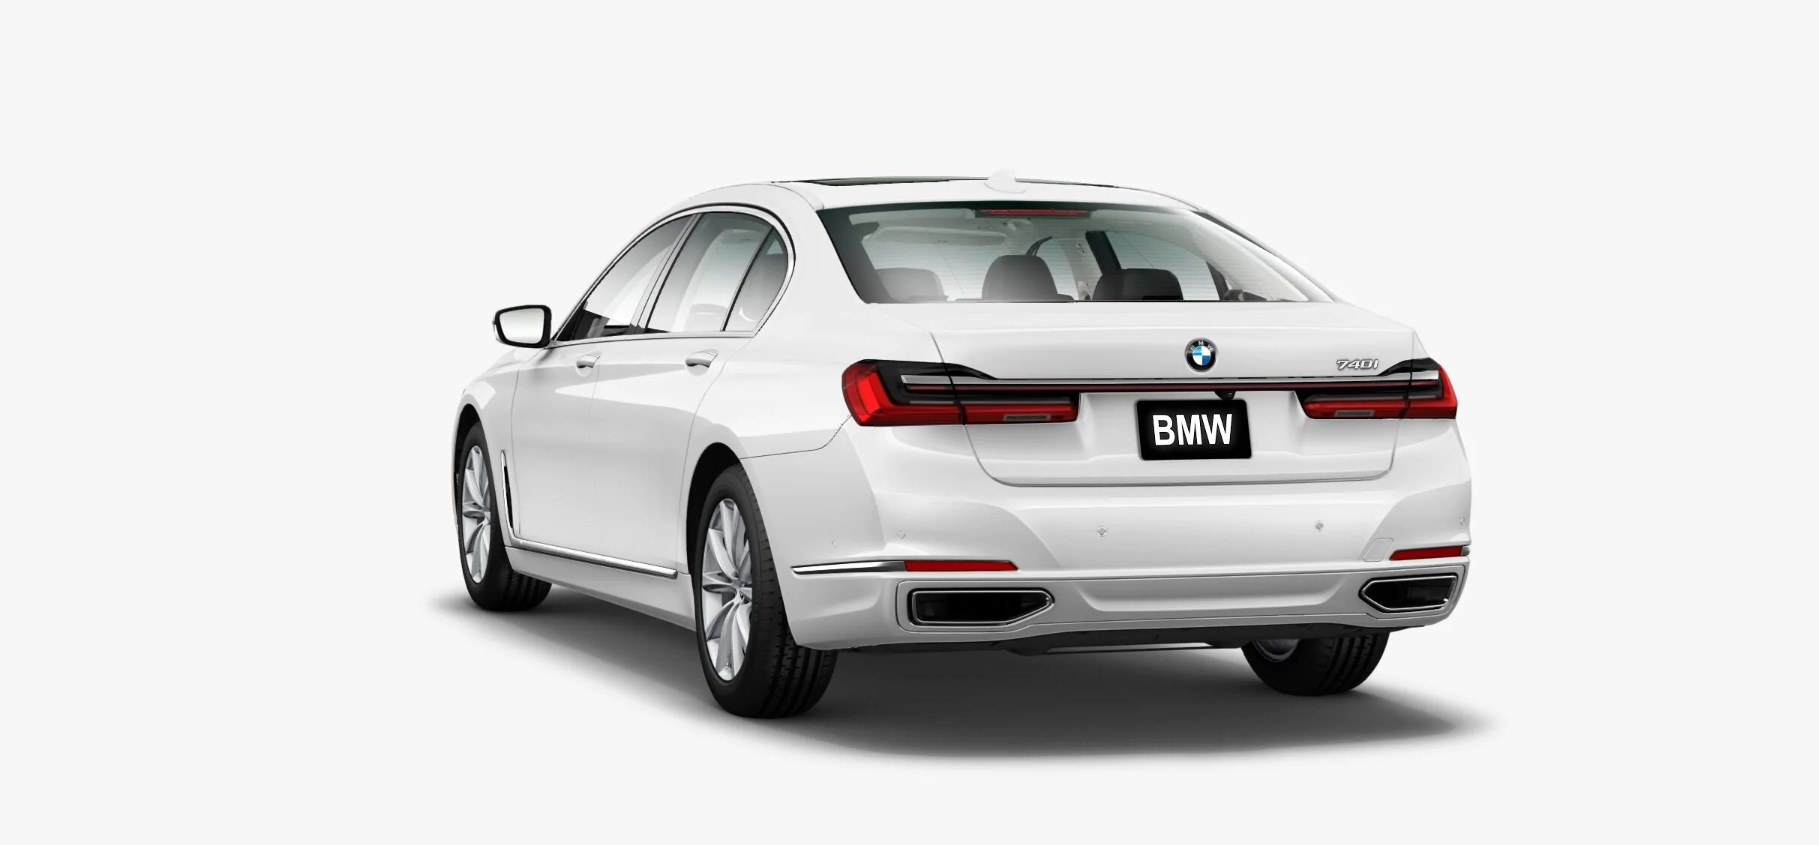 2020 BMW 740i Sedan Back Exterior White Picture